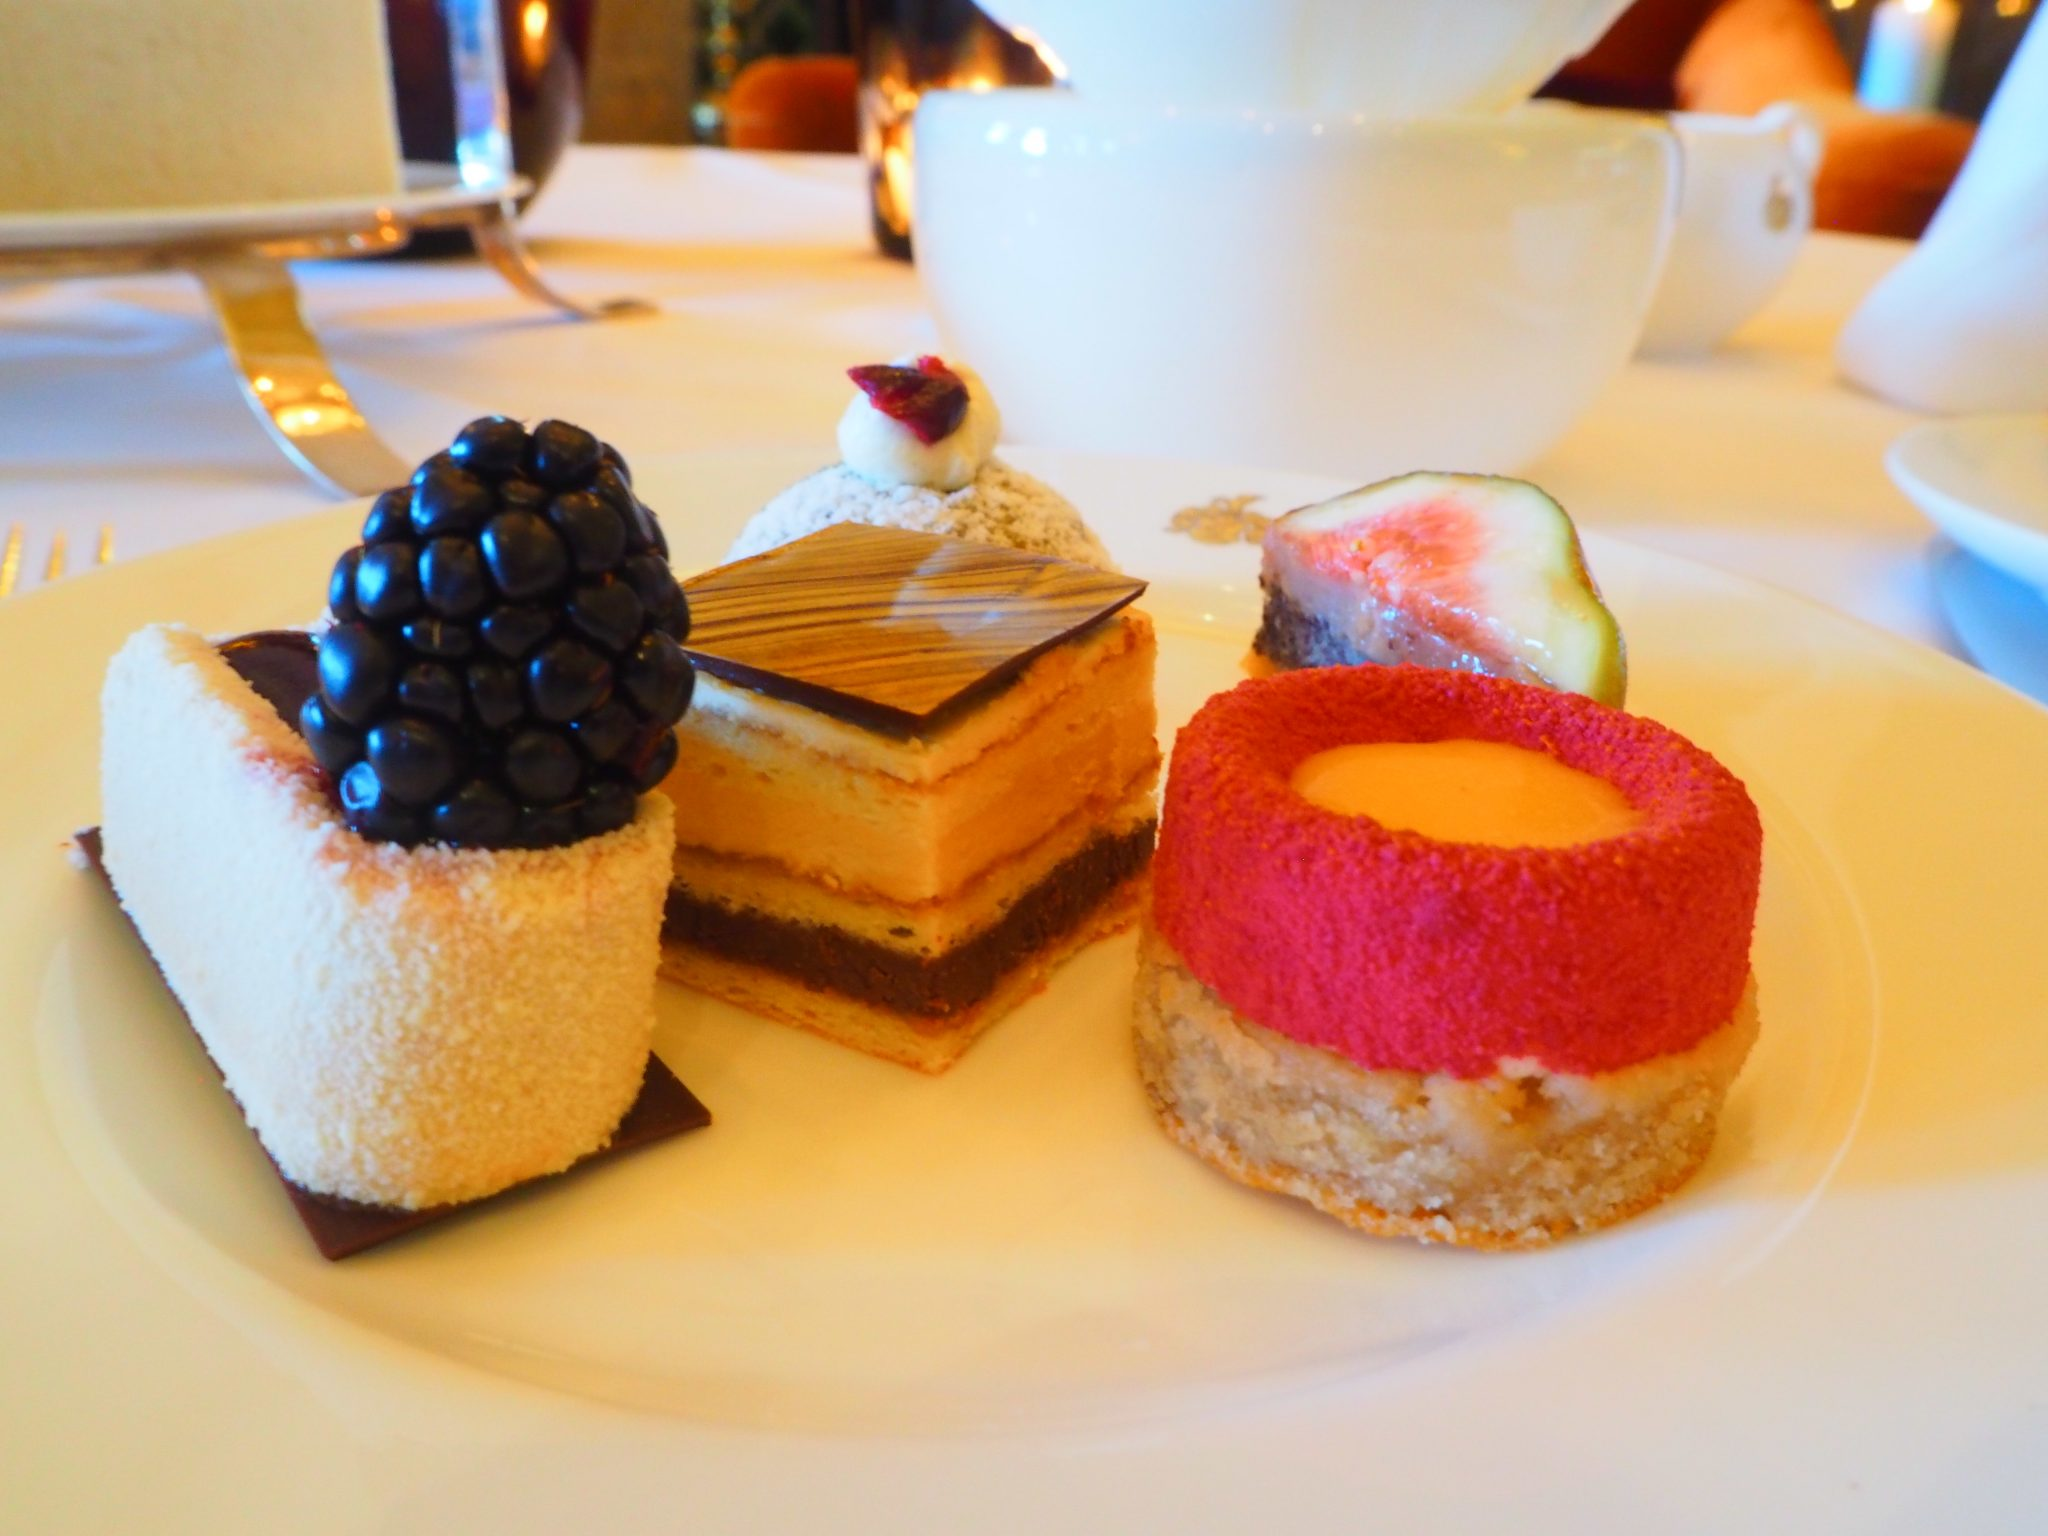 The Cakes: Blackberry & Earl Grey biscuit; Opera cake and Blood orange mousse & Chestnut biscuit